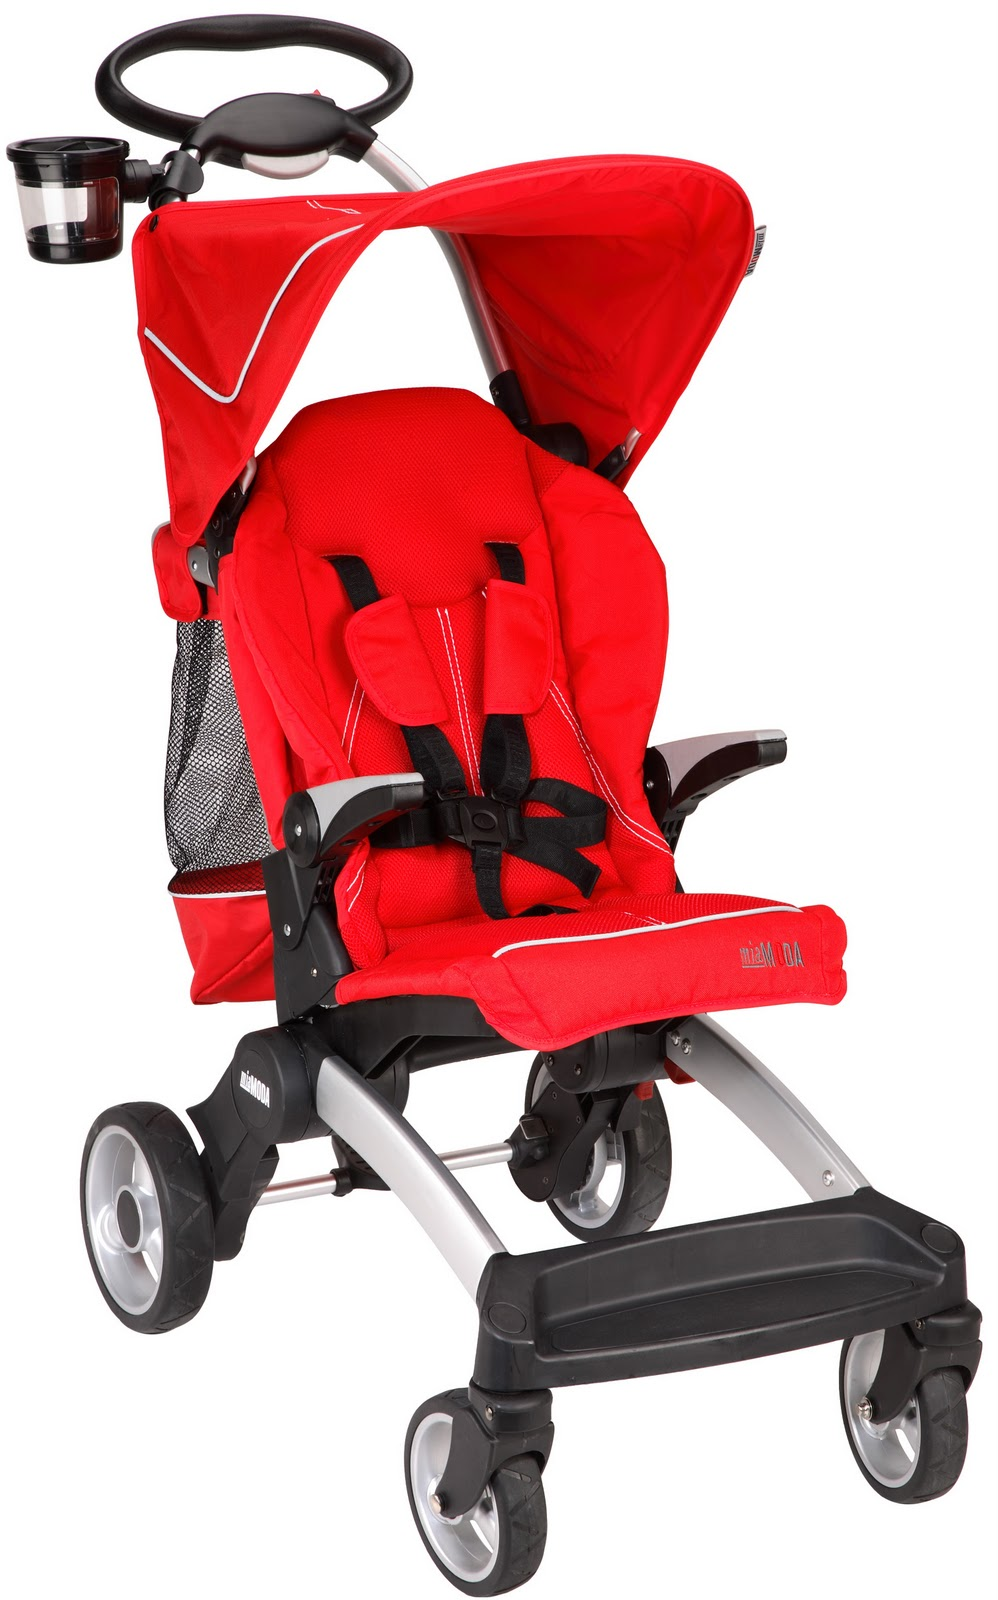 DIVINE BABY FURNITURE: Mia Moda Cielo Evolution Ultra Compact Stroller